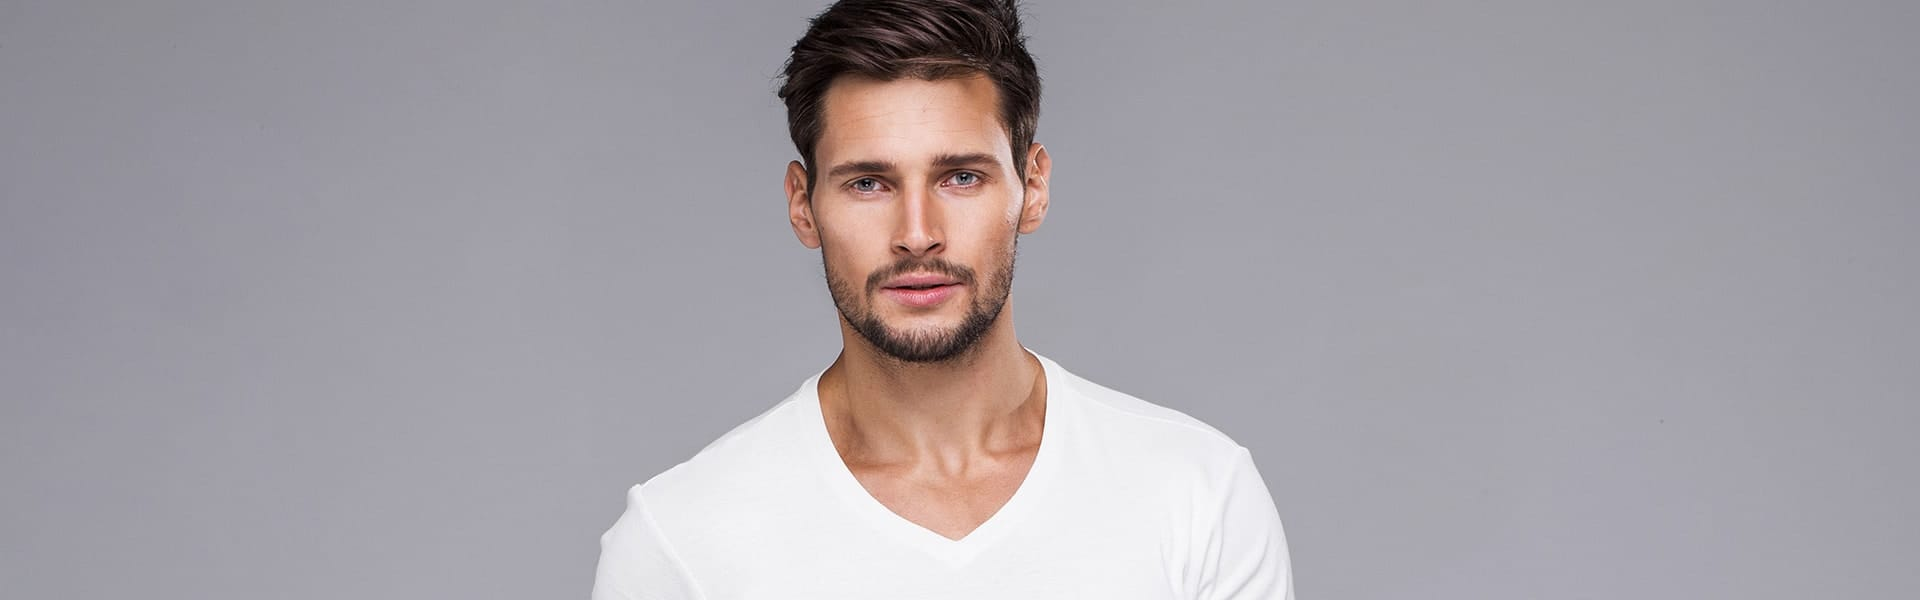 Coolsculpting For Men Male Coolsculpting Nyc